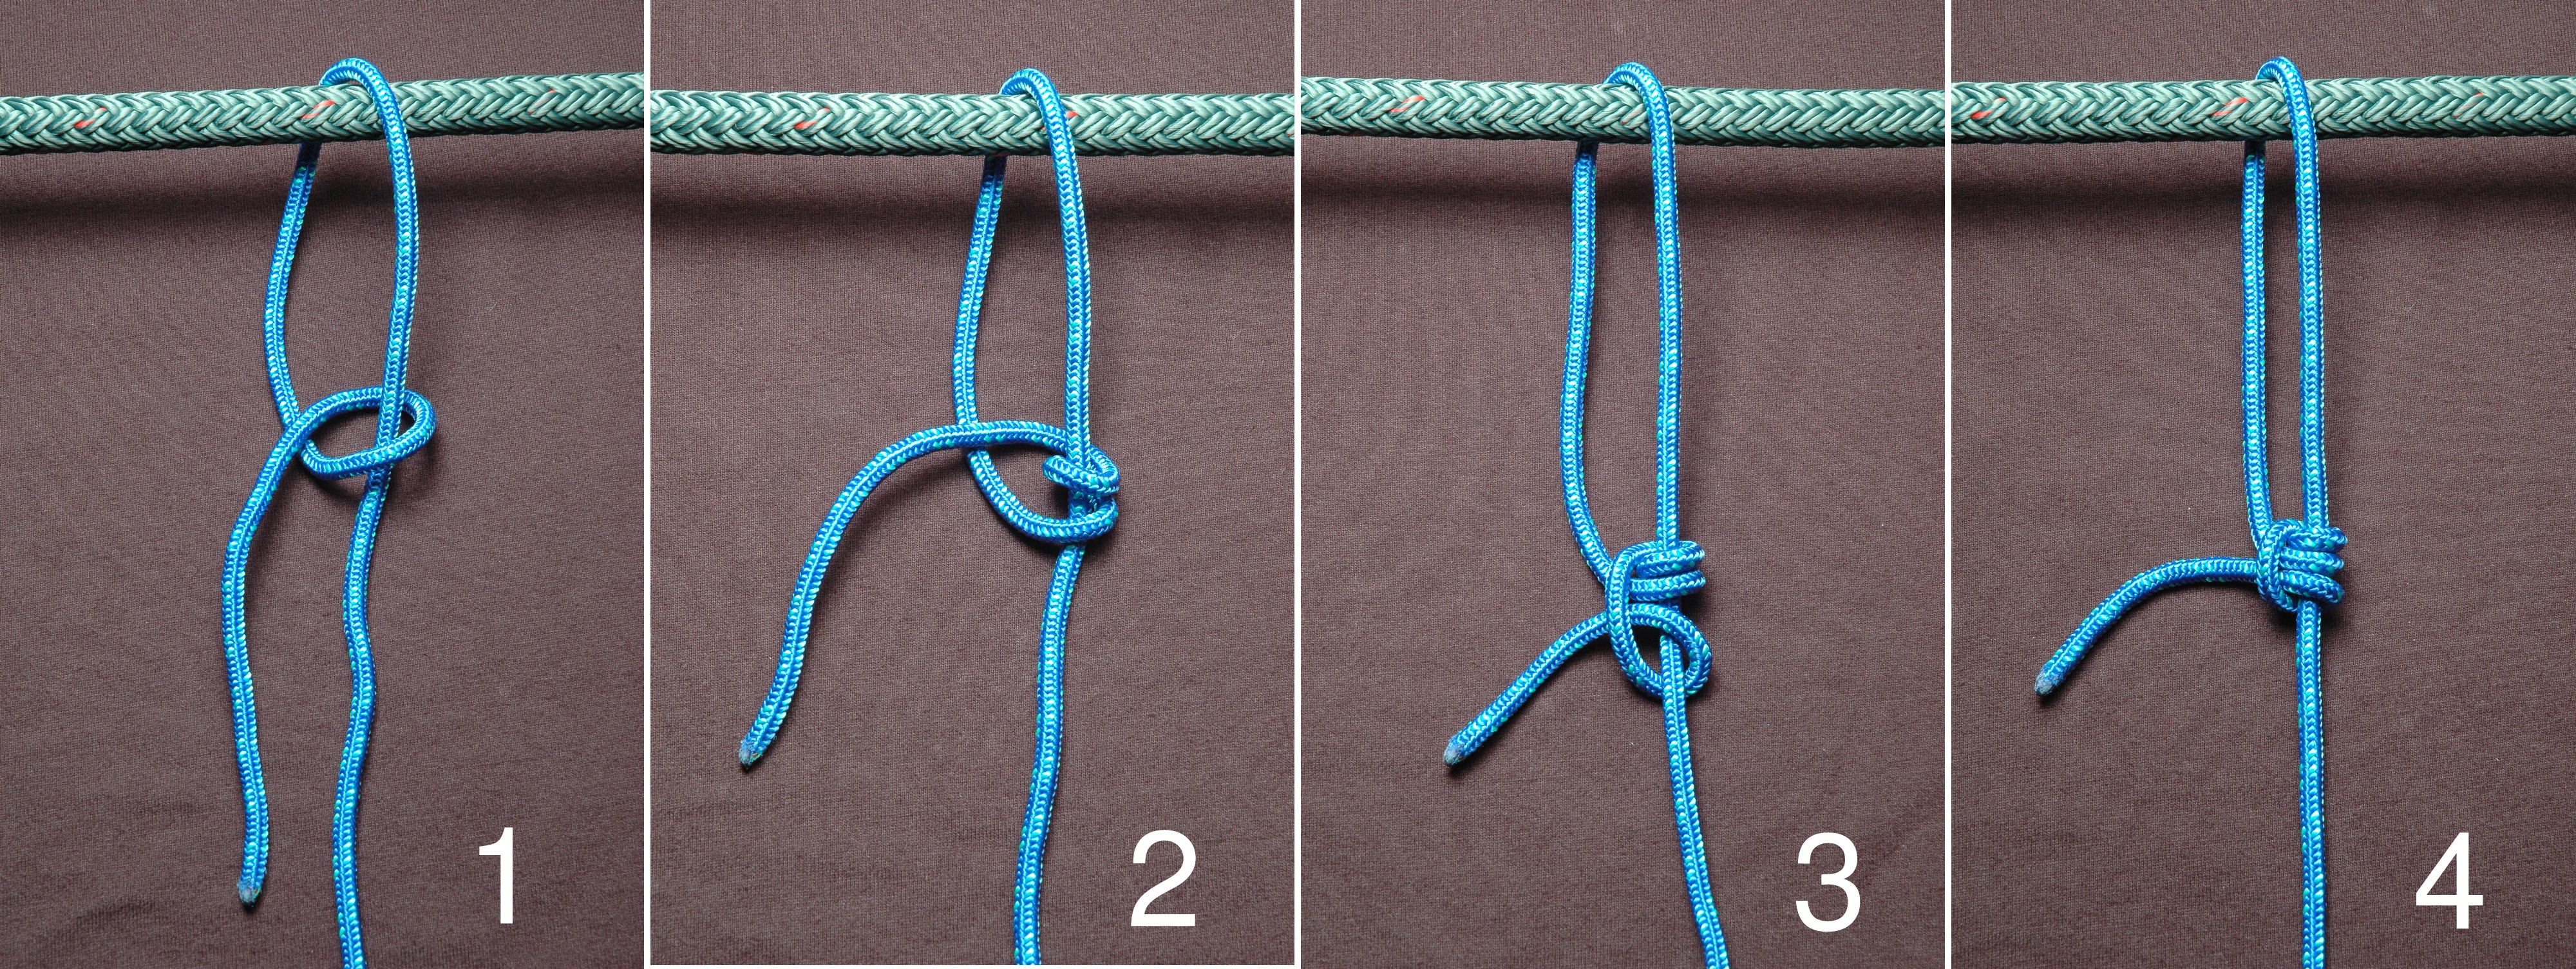 Hitch Parts Diagram Part And Make a Half-hitch